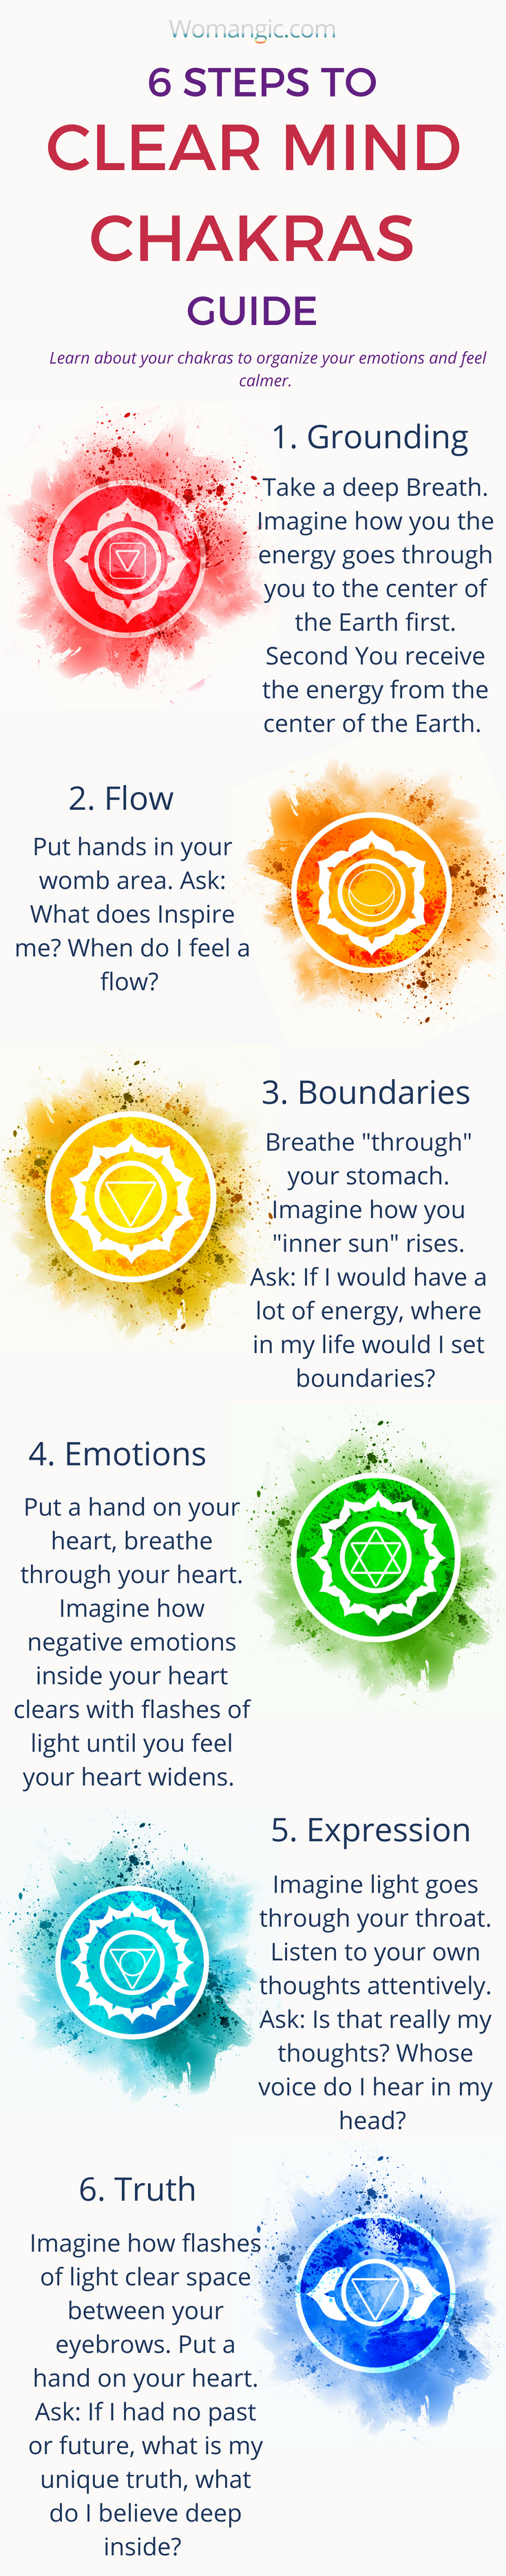 Do You Struggle To Calm Down Your Mind These Steps Can Help Chakra Chakra Balancing Root Sacral Solar Plexus Chakra Affirmations Chakra Chakra Cleanse